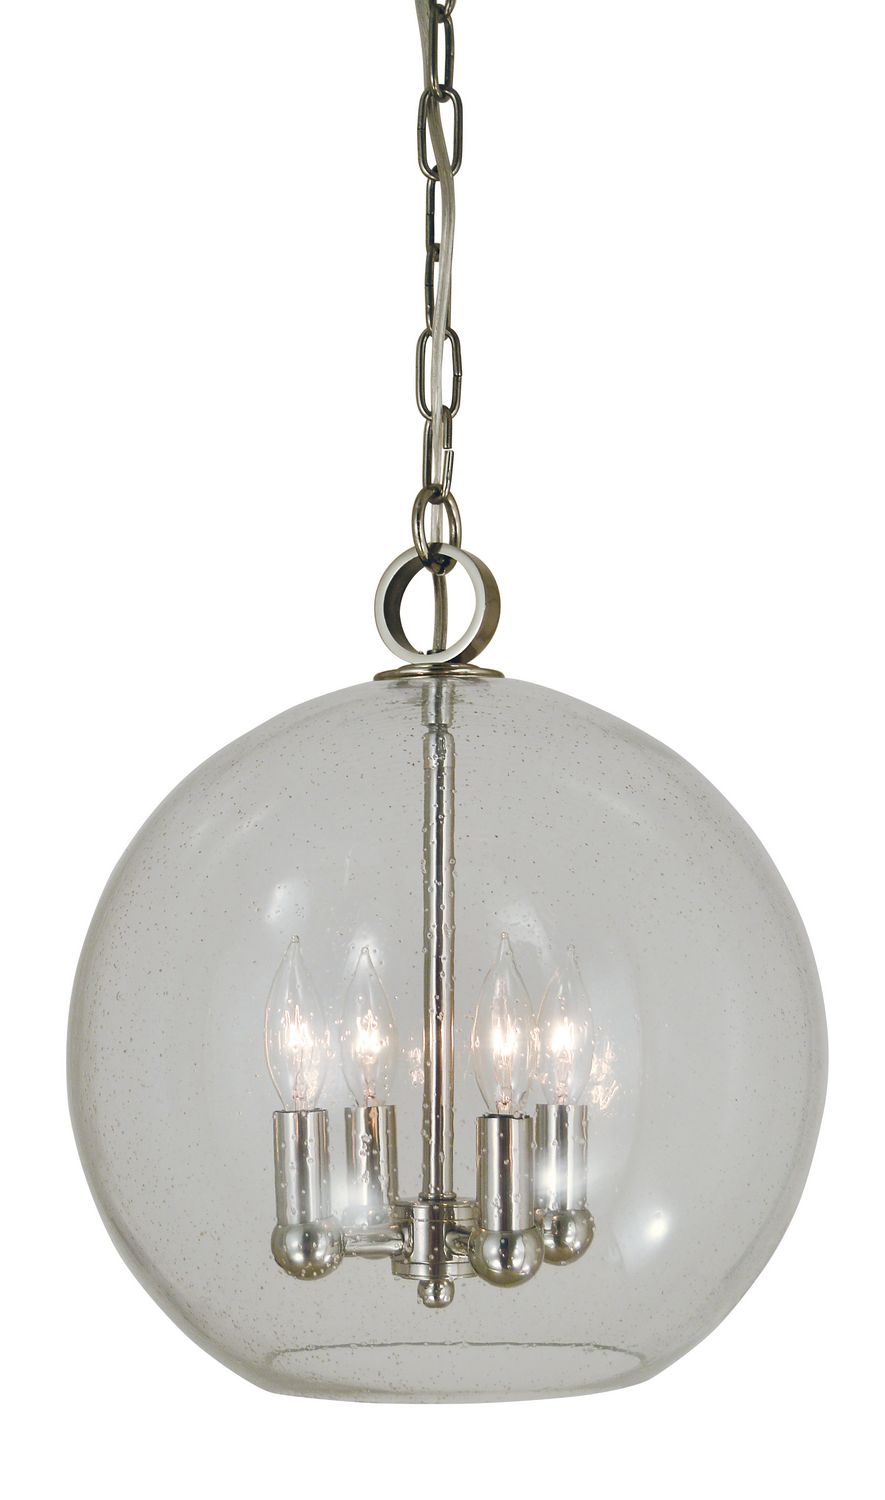 Four light mini chandelier bathroom lighting home lighting lighting ideas polished nickel